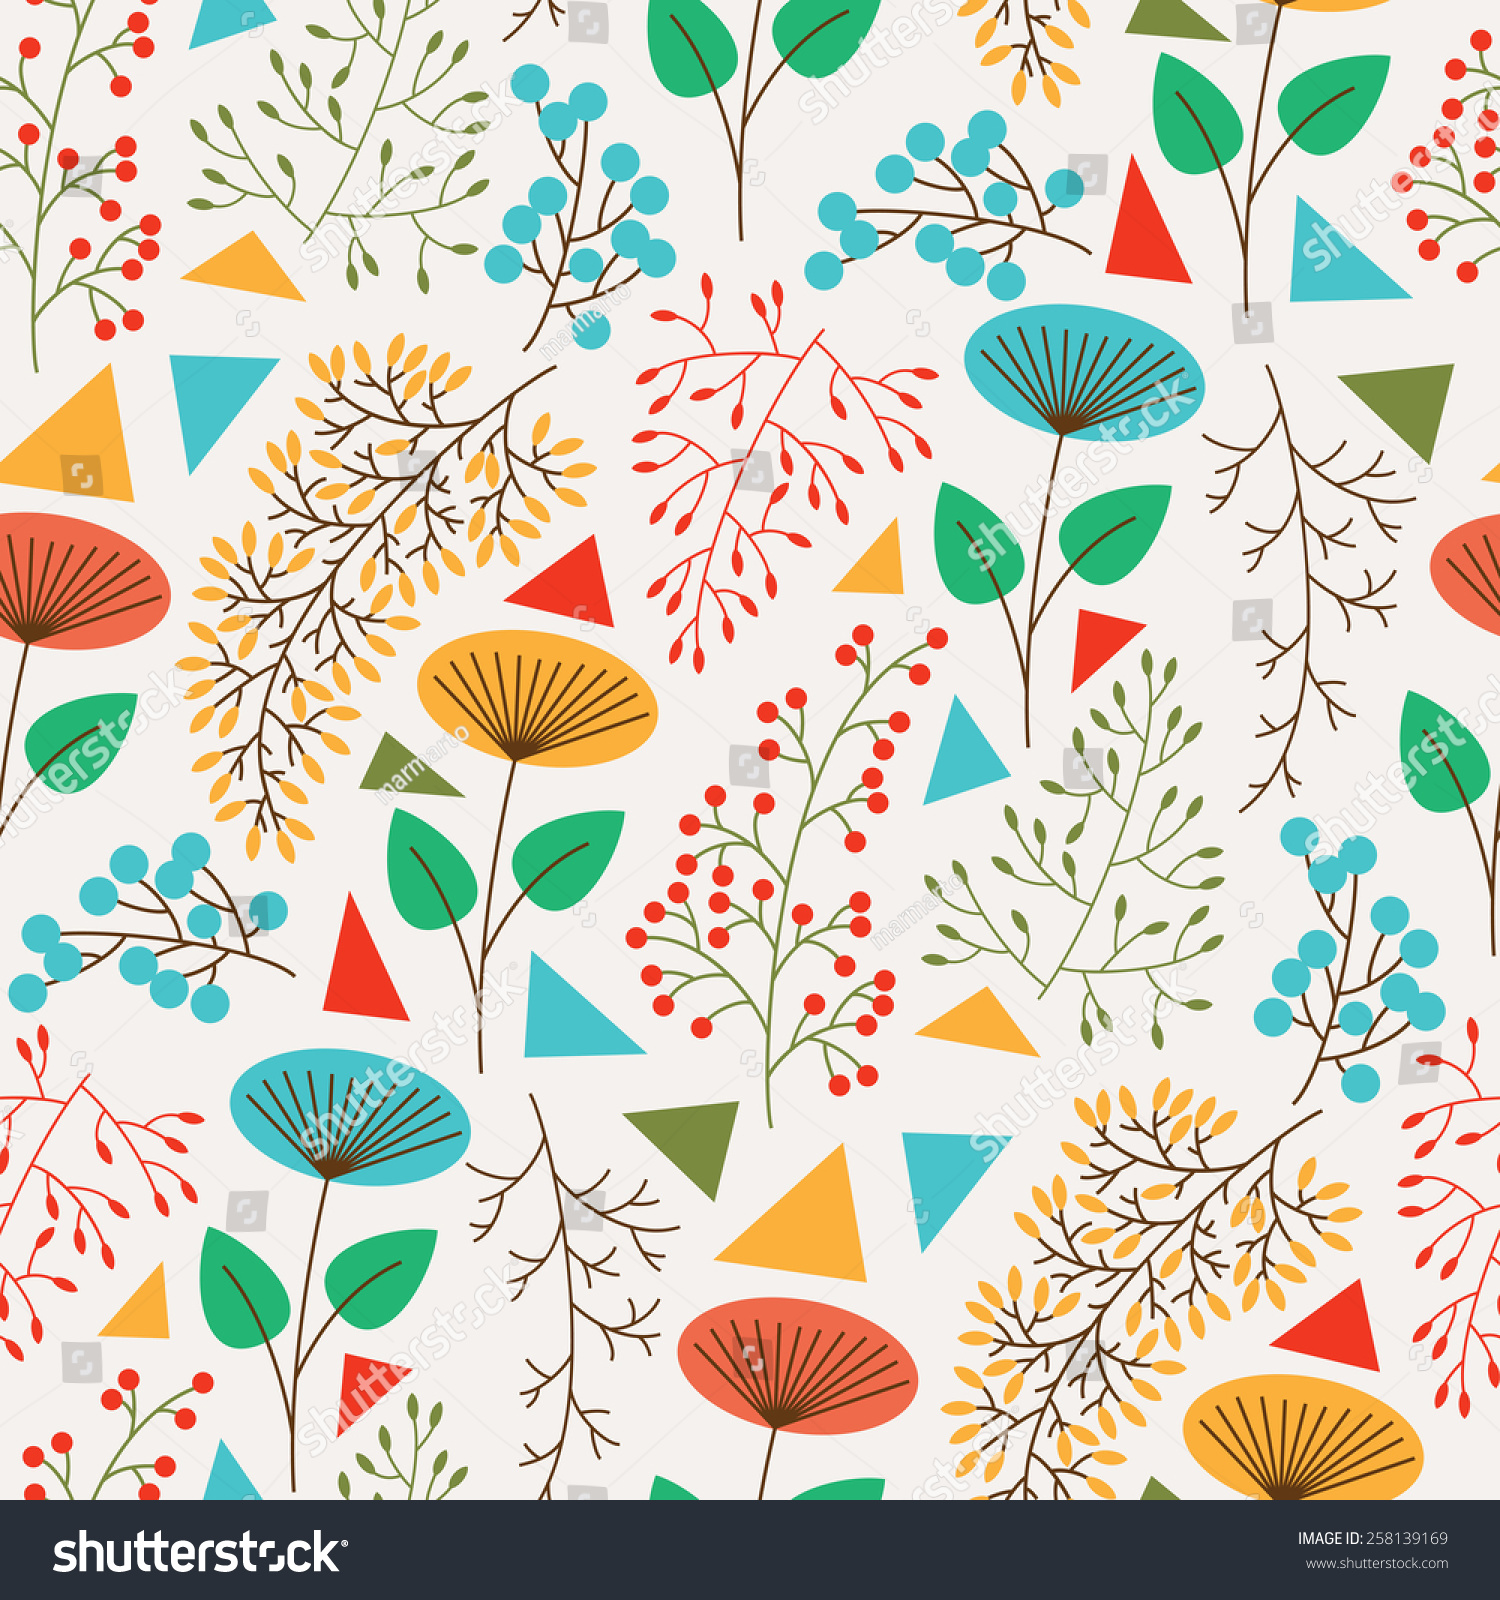 seamless pattern cute plants geometric figures stock vector